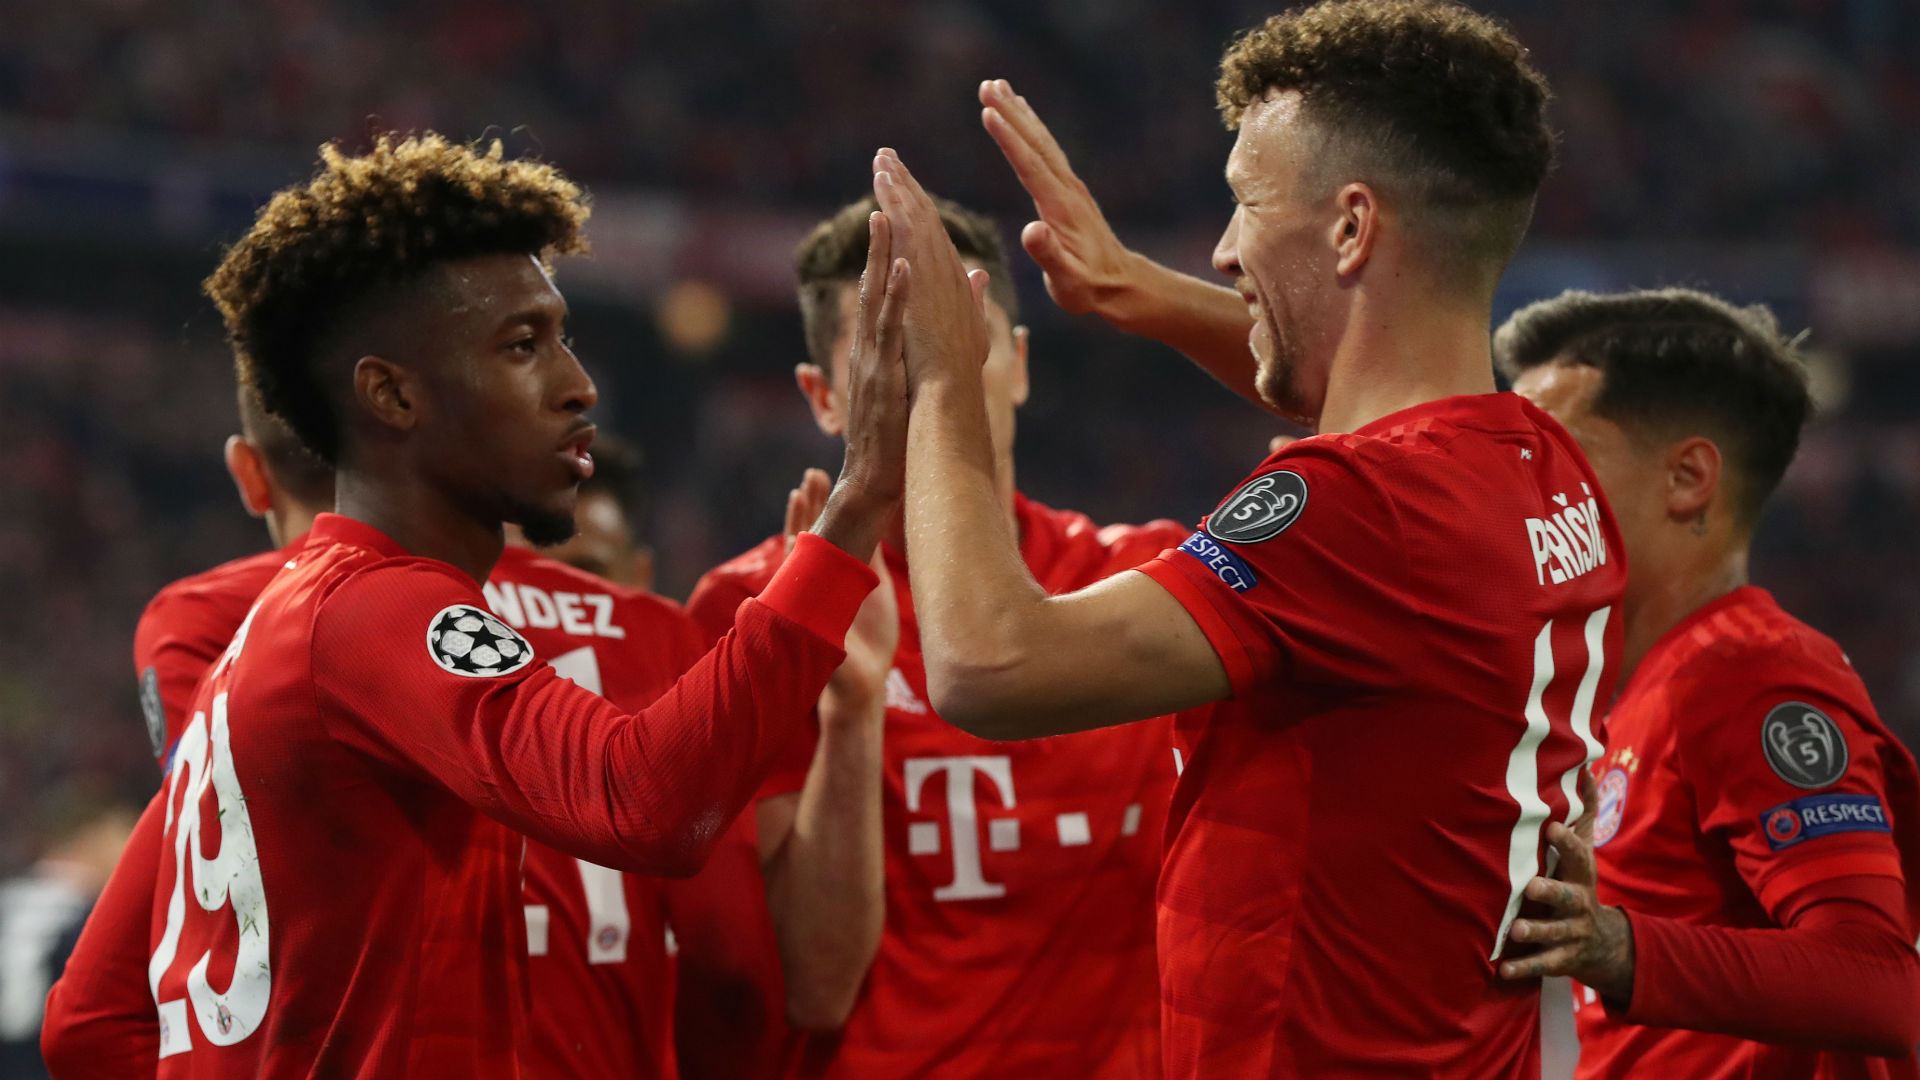 Bayern Munich 3-0 Red Star Belgrade: Coman, Lewandowski and Muller break resistance